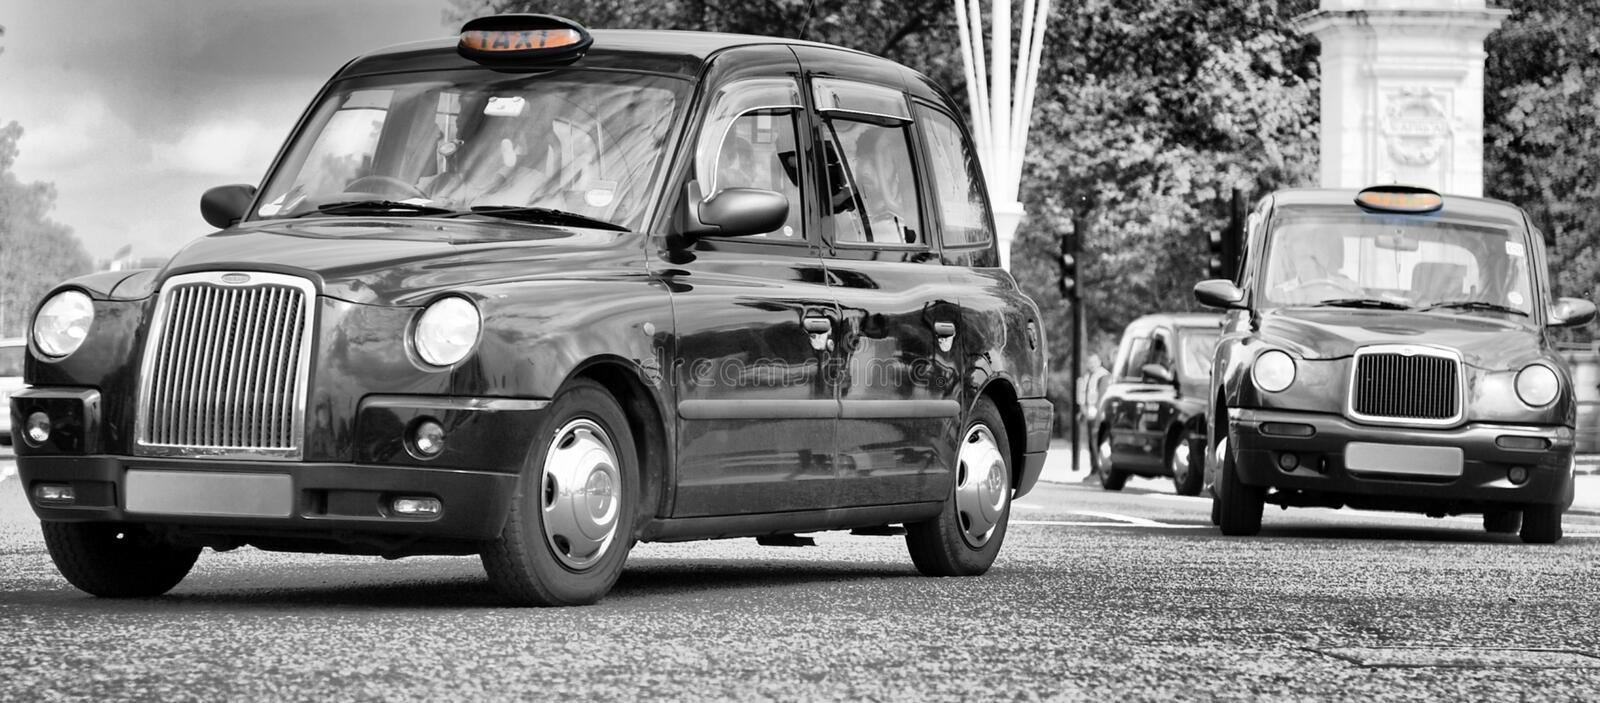 Taxis in Londen stad royalty-vrije stock foto